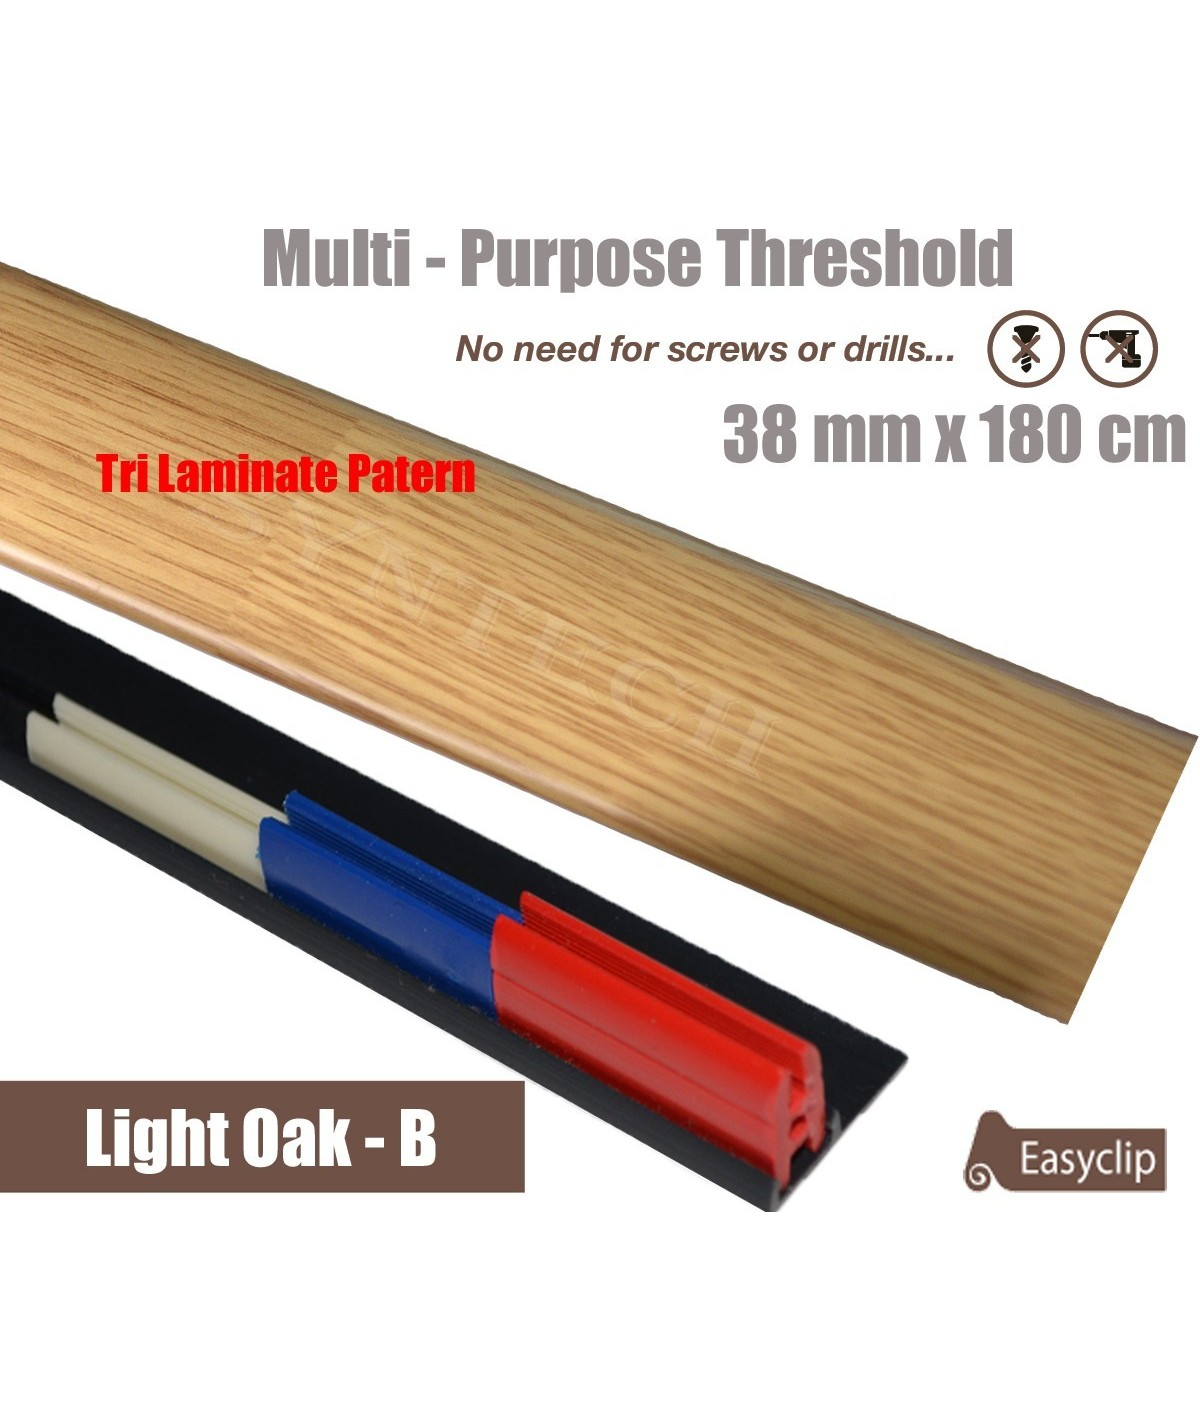 Light Oak Tri laminate FinishThreshold Strip 38mm x 180cm multi Purpose Adhesive Clip System